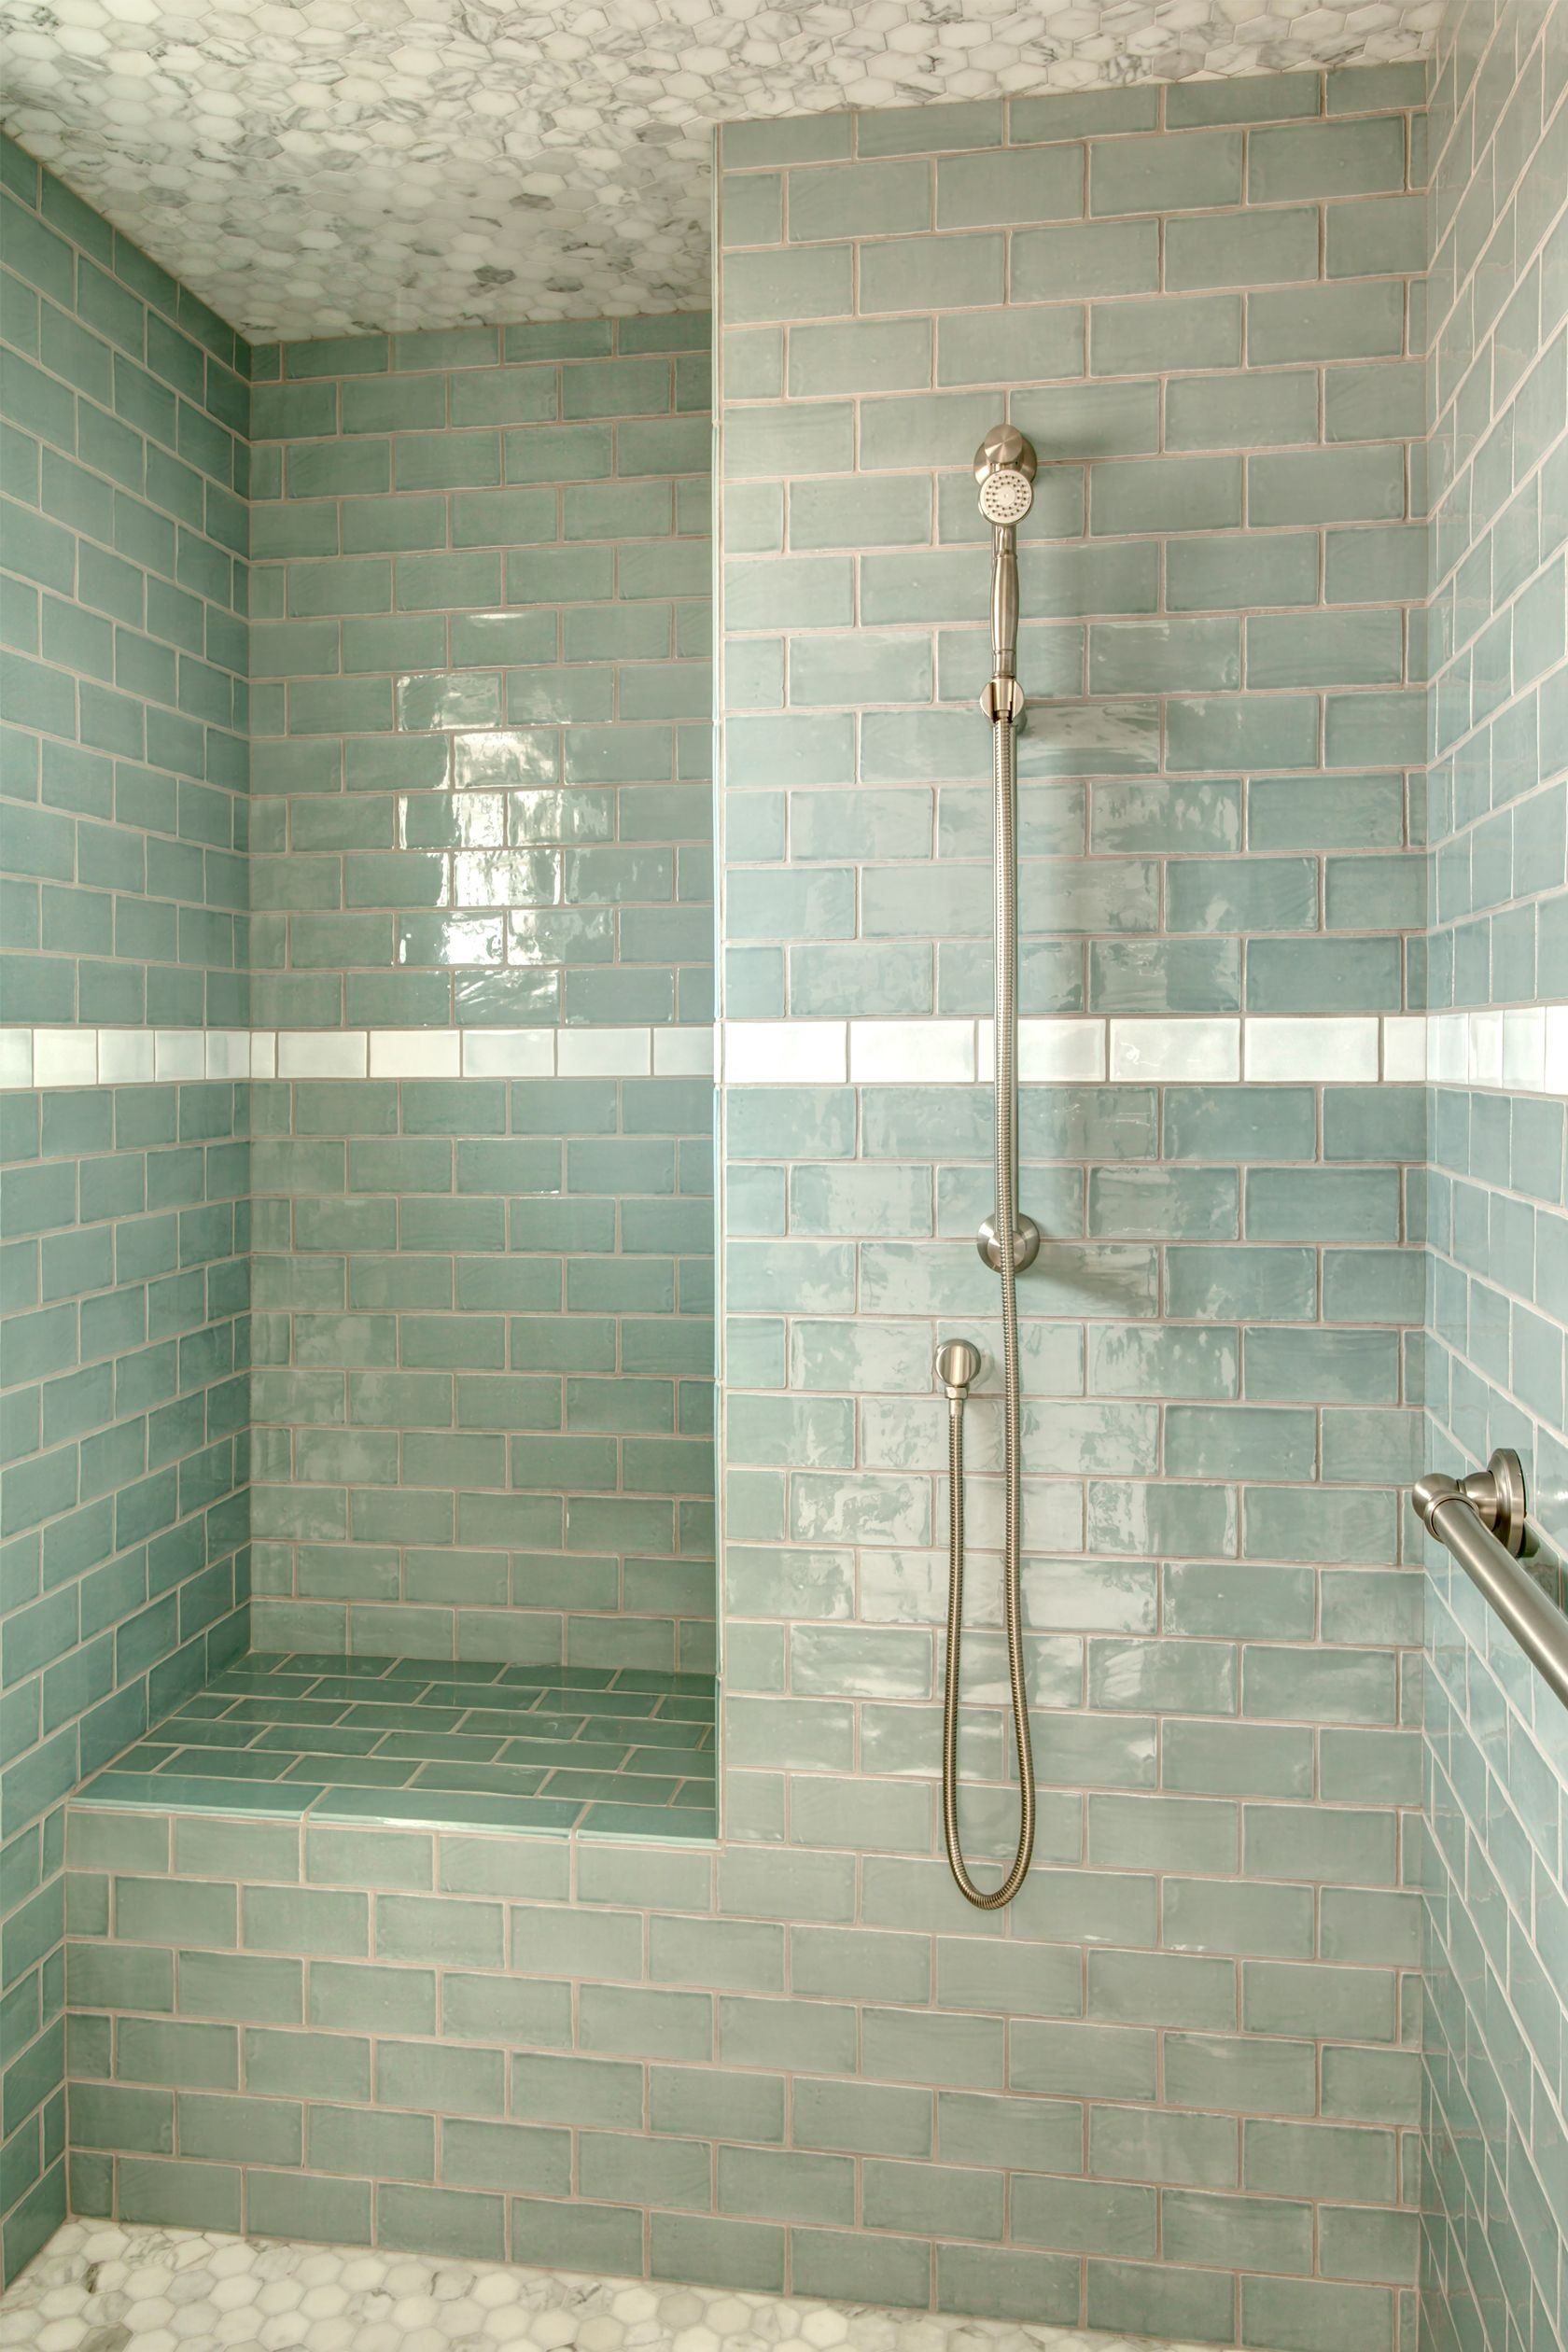 This Walk In Shower Is Tiled From Floor To Ceiling Bathroom Showertile Bathroomidea Shower Ceiling Tile Tile Walk In Shower Bathroom Remodel Shower Bathtub